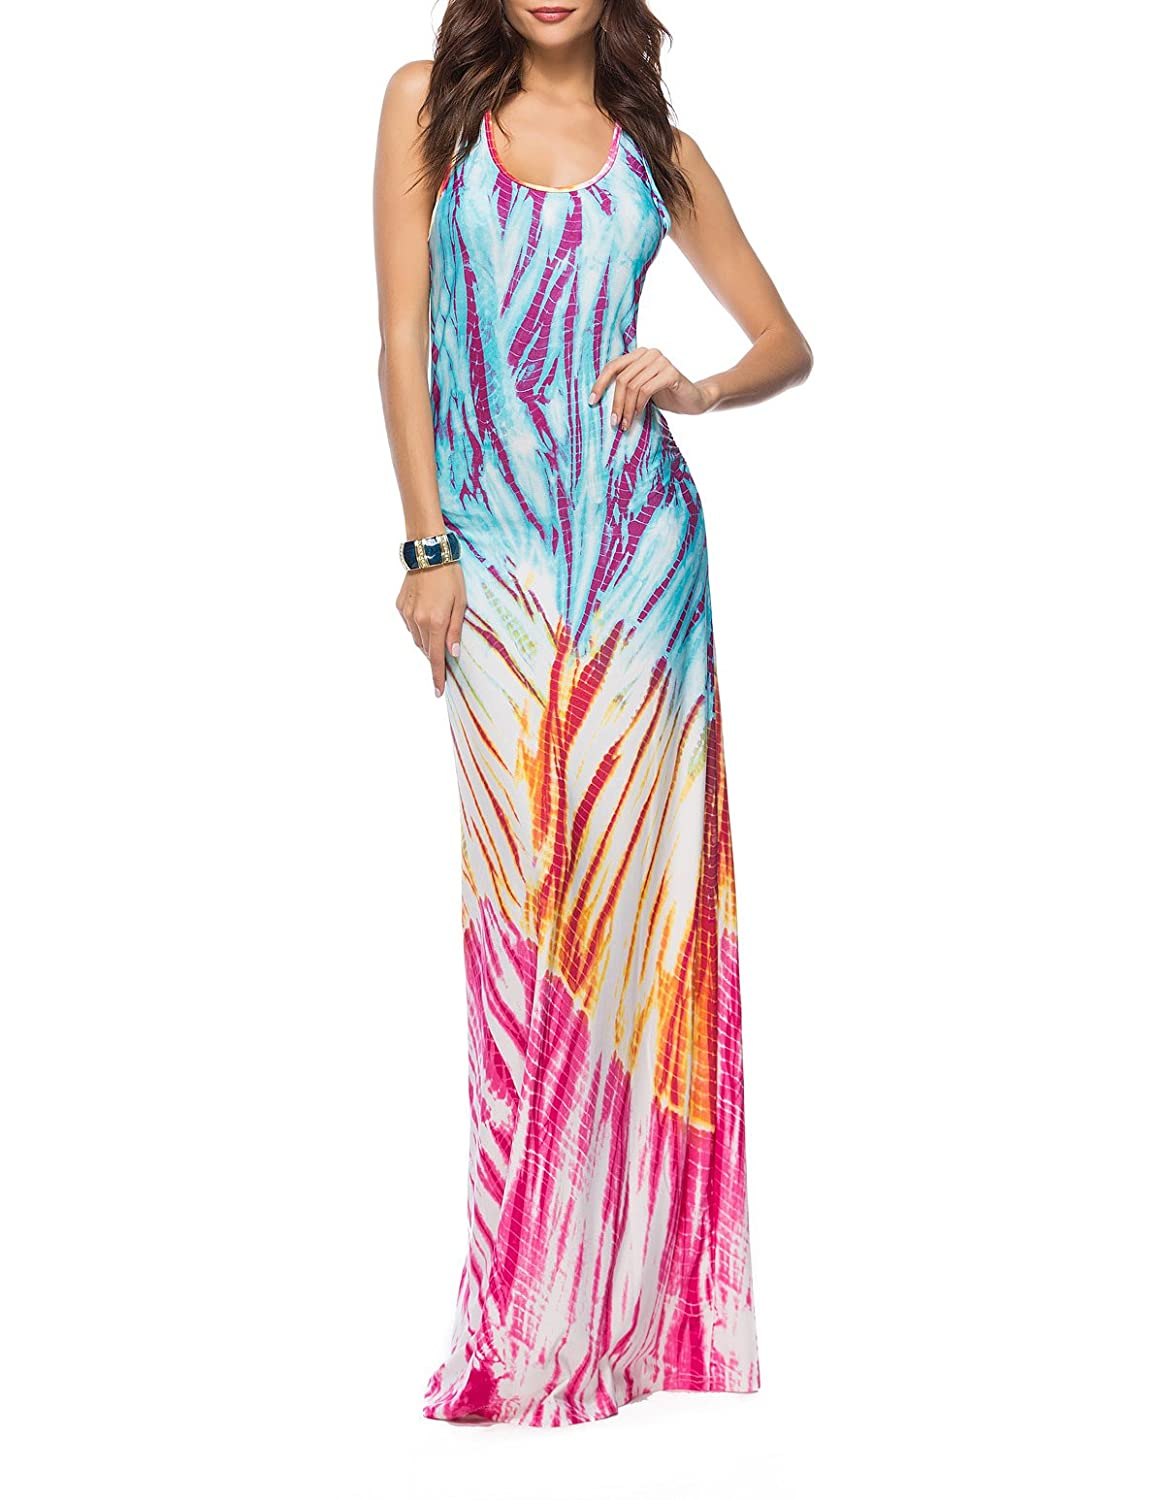 26248ef51f Top 10 wholesale A Line Maxi Dress With Sleeves - Chinabrands.com